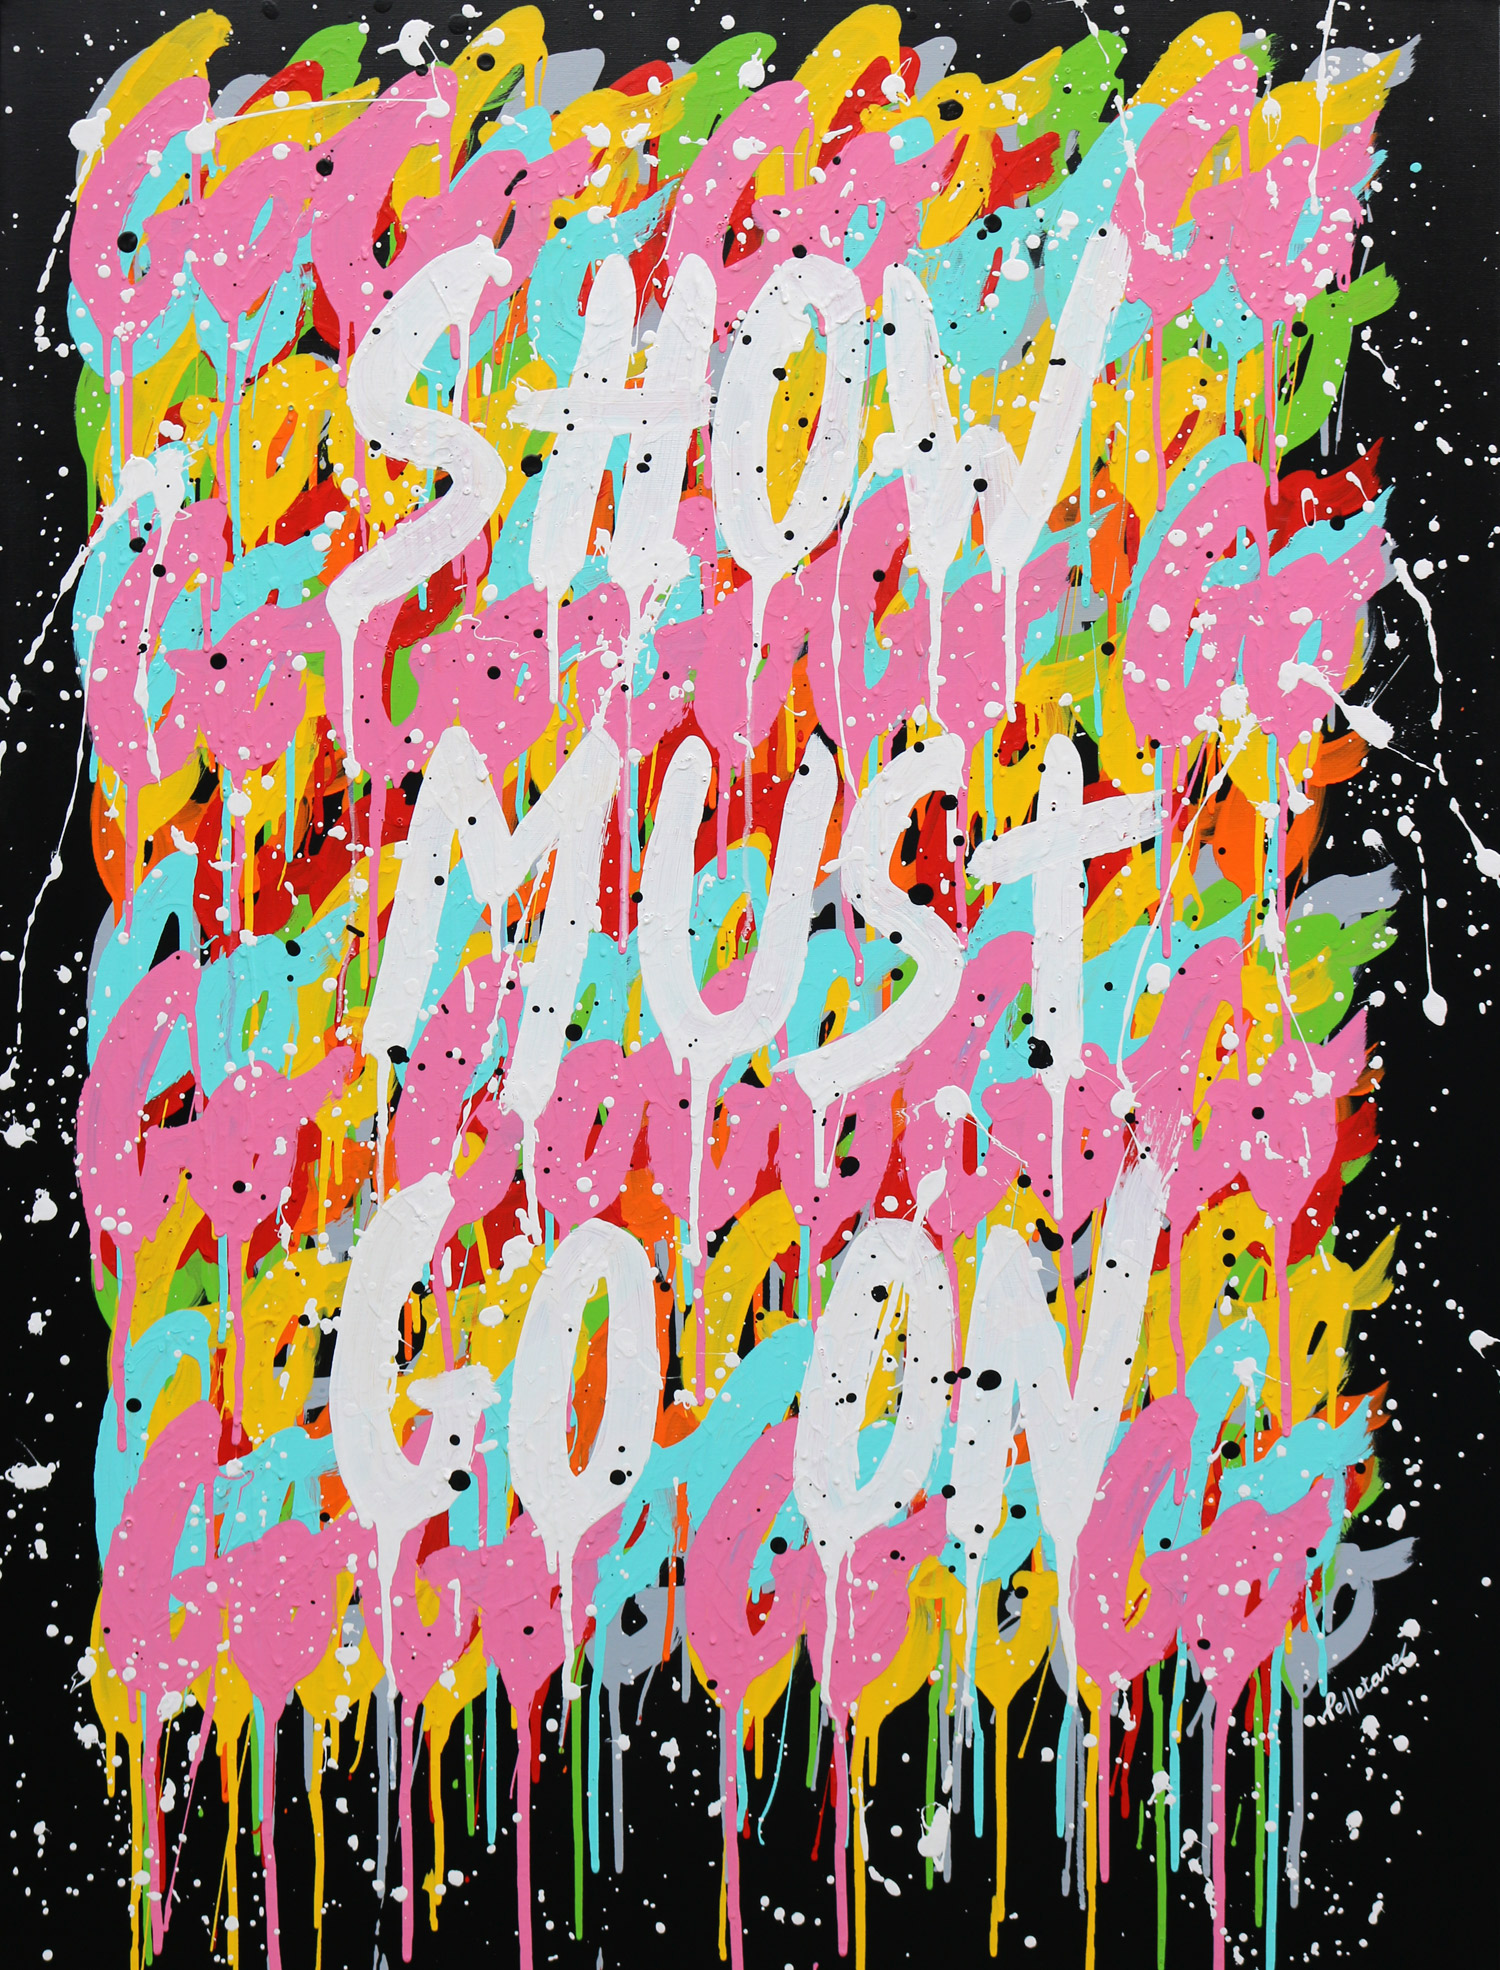 Show Must Go On 130 x 97 cm